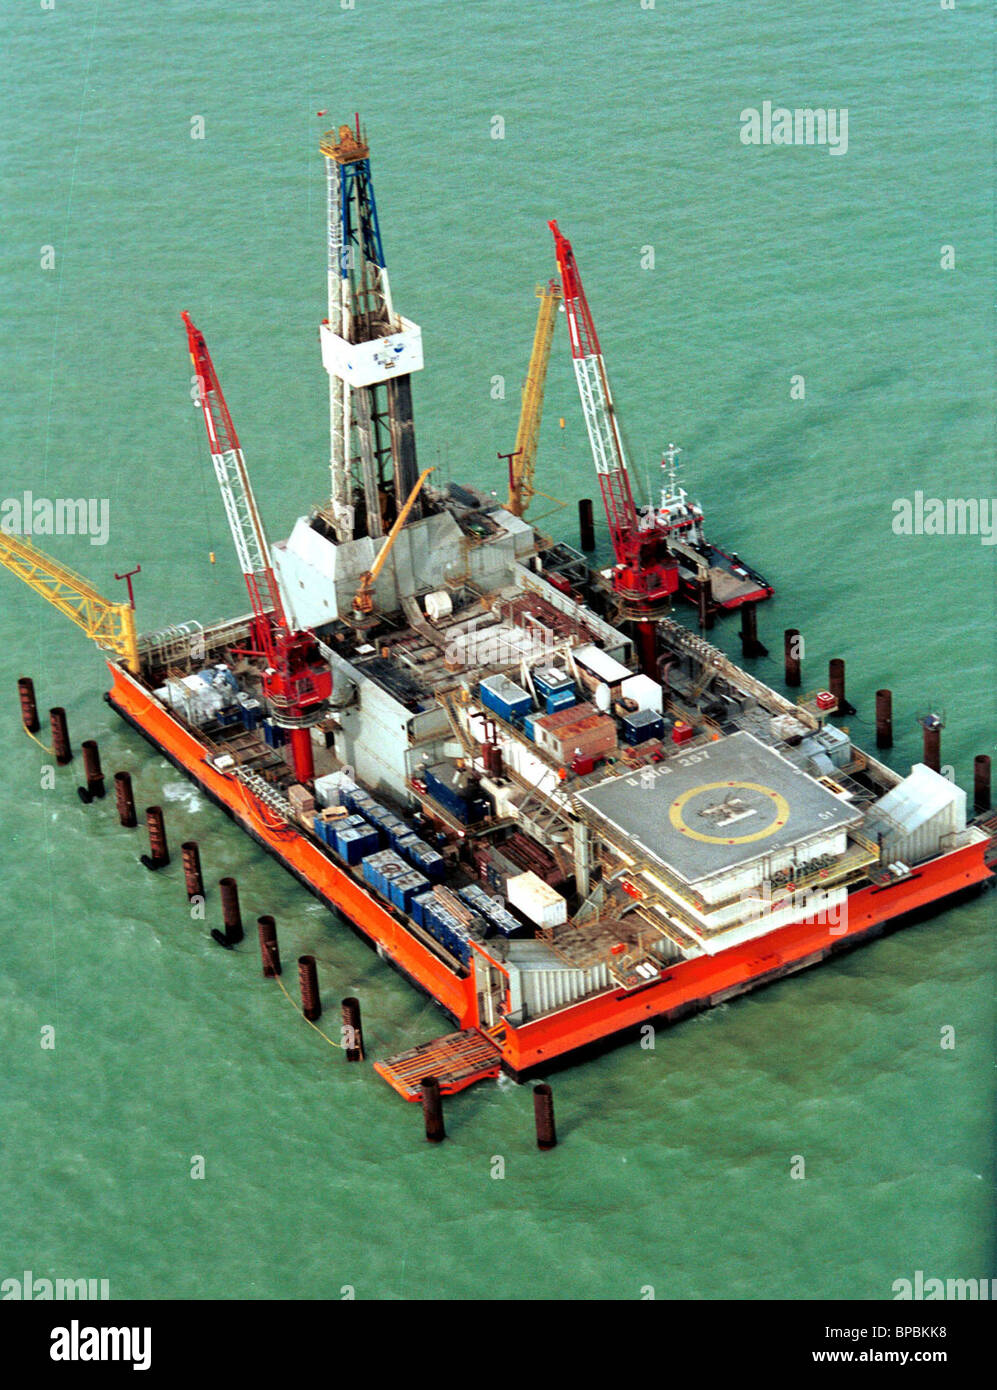 On the rig Sunkar an exploration drilling works. - Stock Image